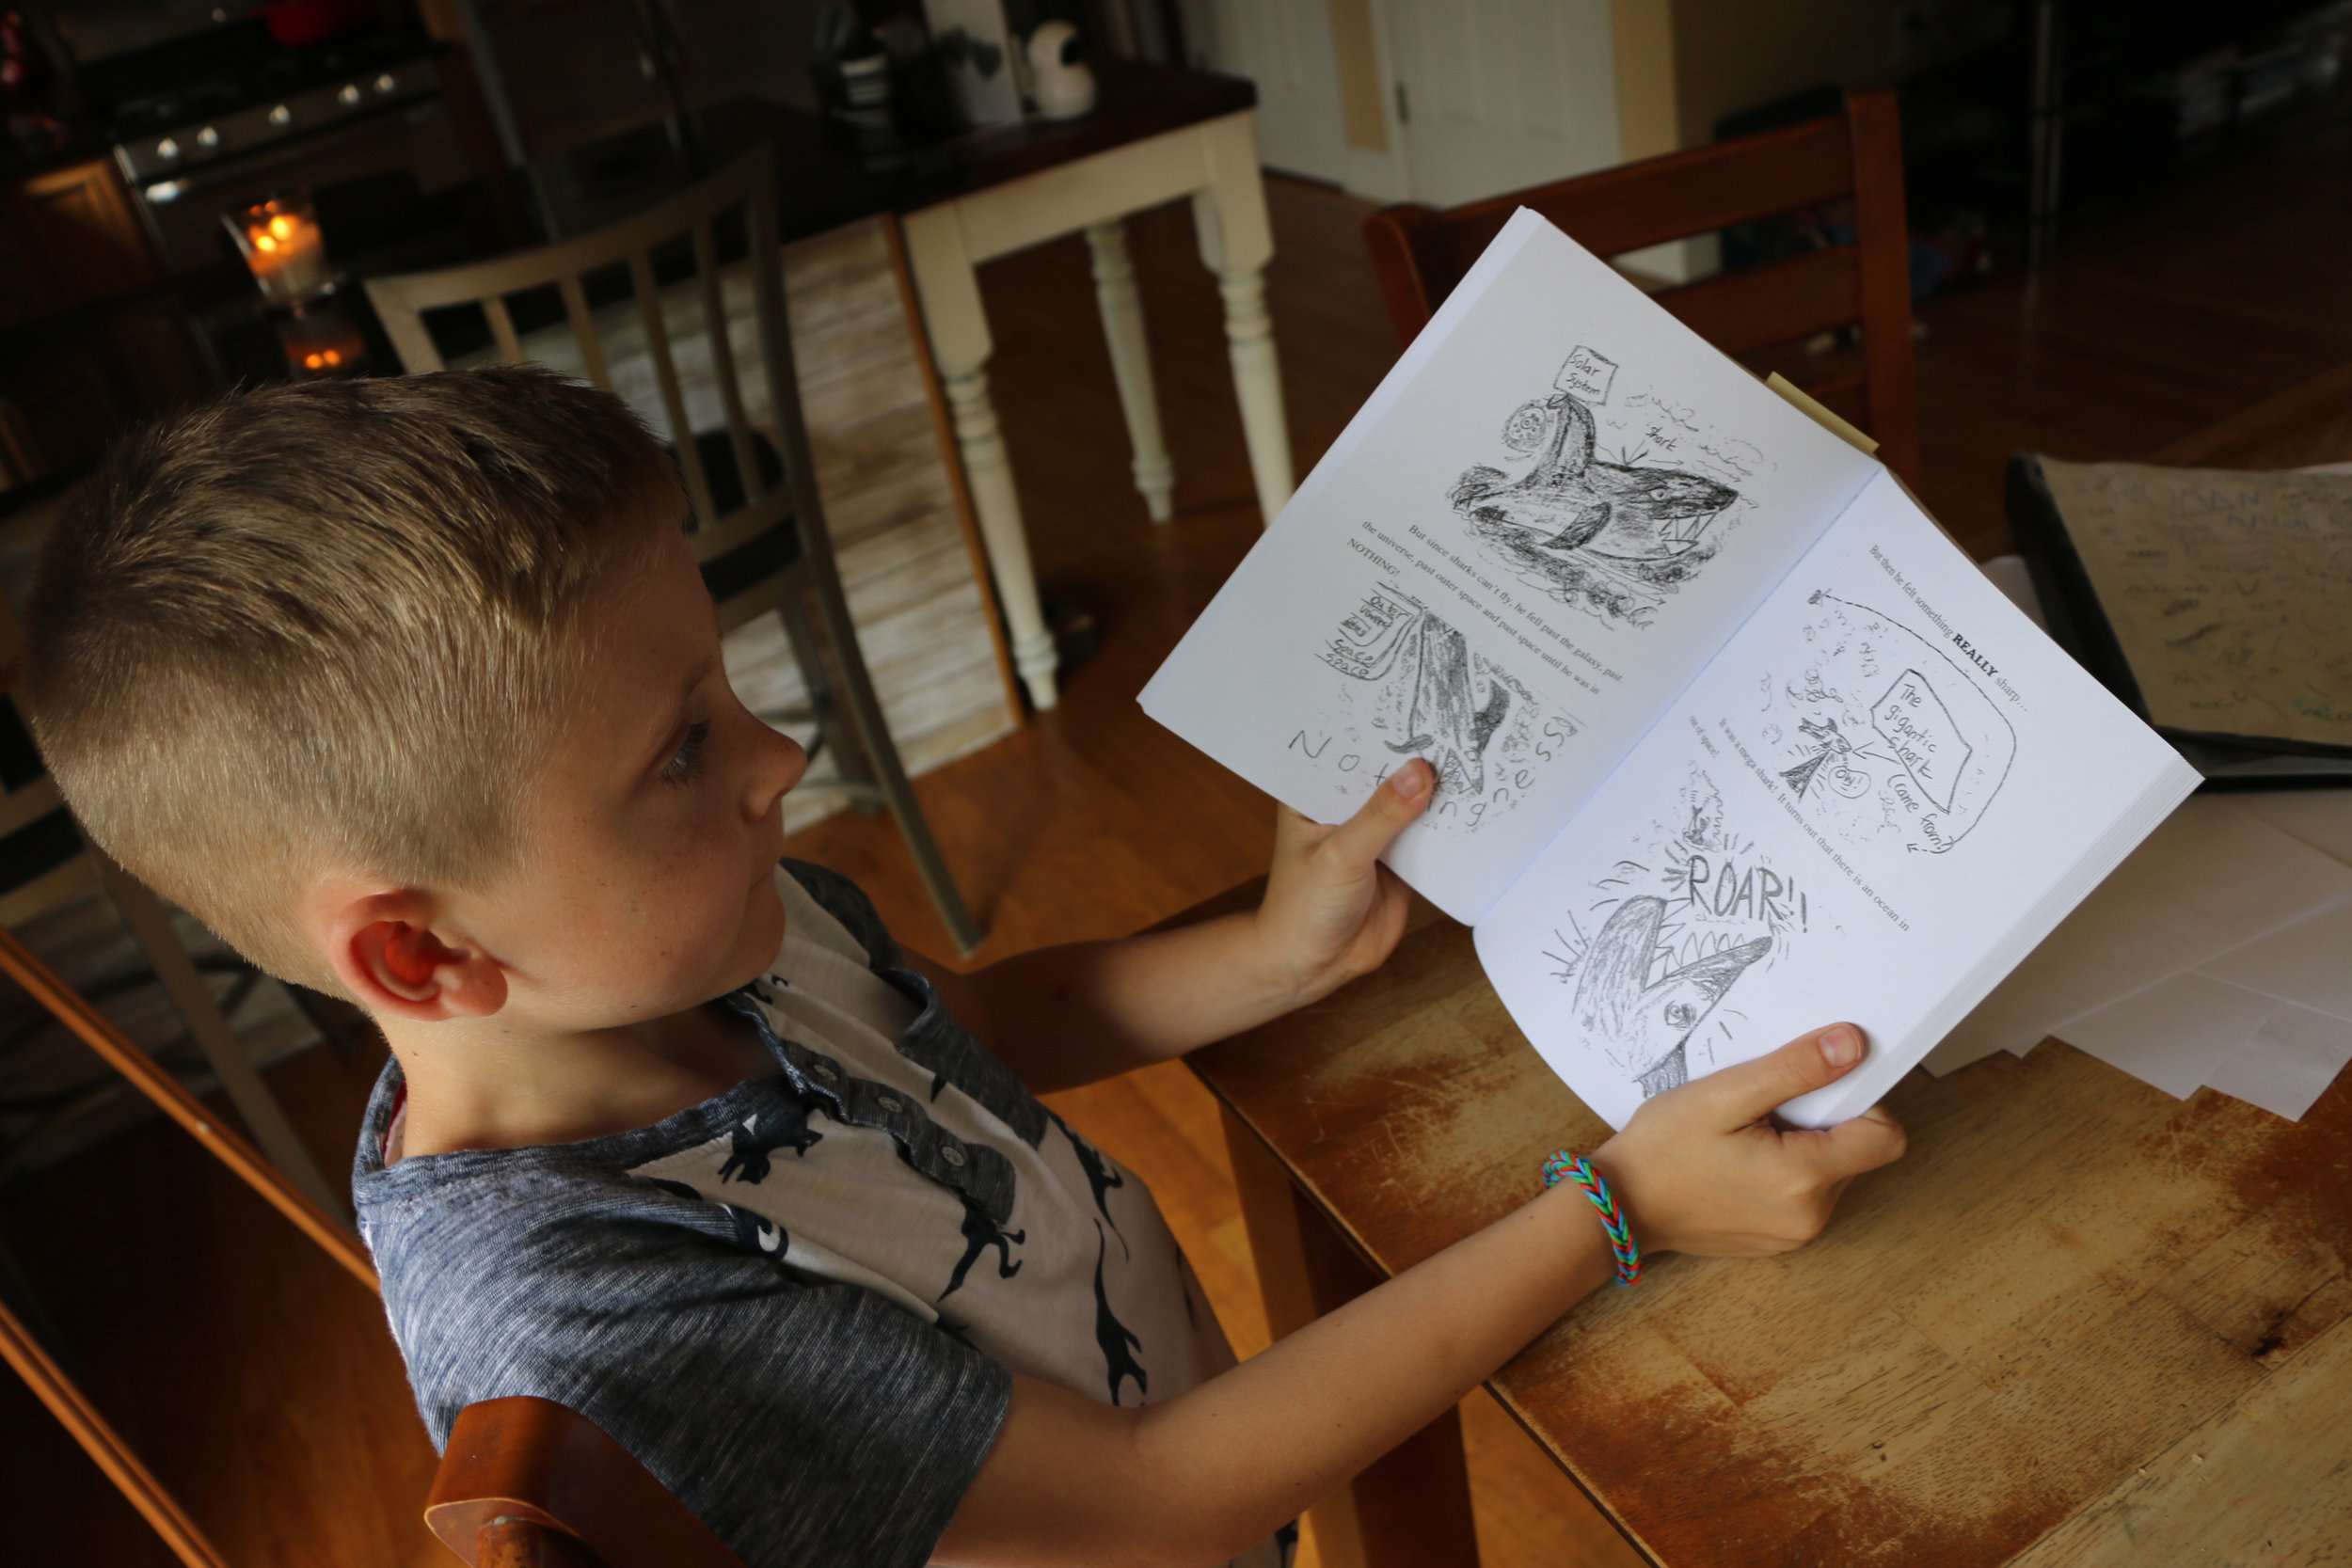 """Griswold 8-year-old writes and illustrates graphic novel - Eight-year-old Grady Haggan of Griswold has been writing and illustrating books since the age of 4. Earlier this month, he fulfilled a dream when he self-published his first """"epic novel.""""This story was published by the Norwich Bulletin. click here to view"""